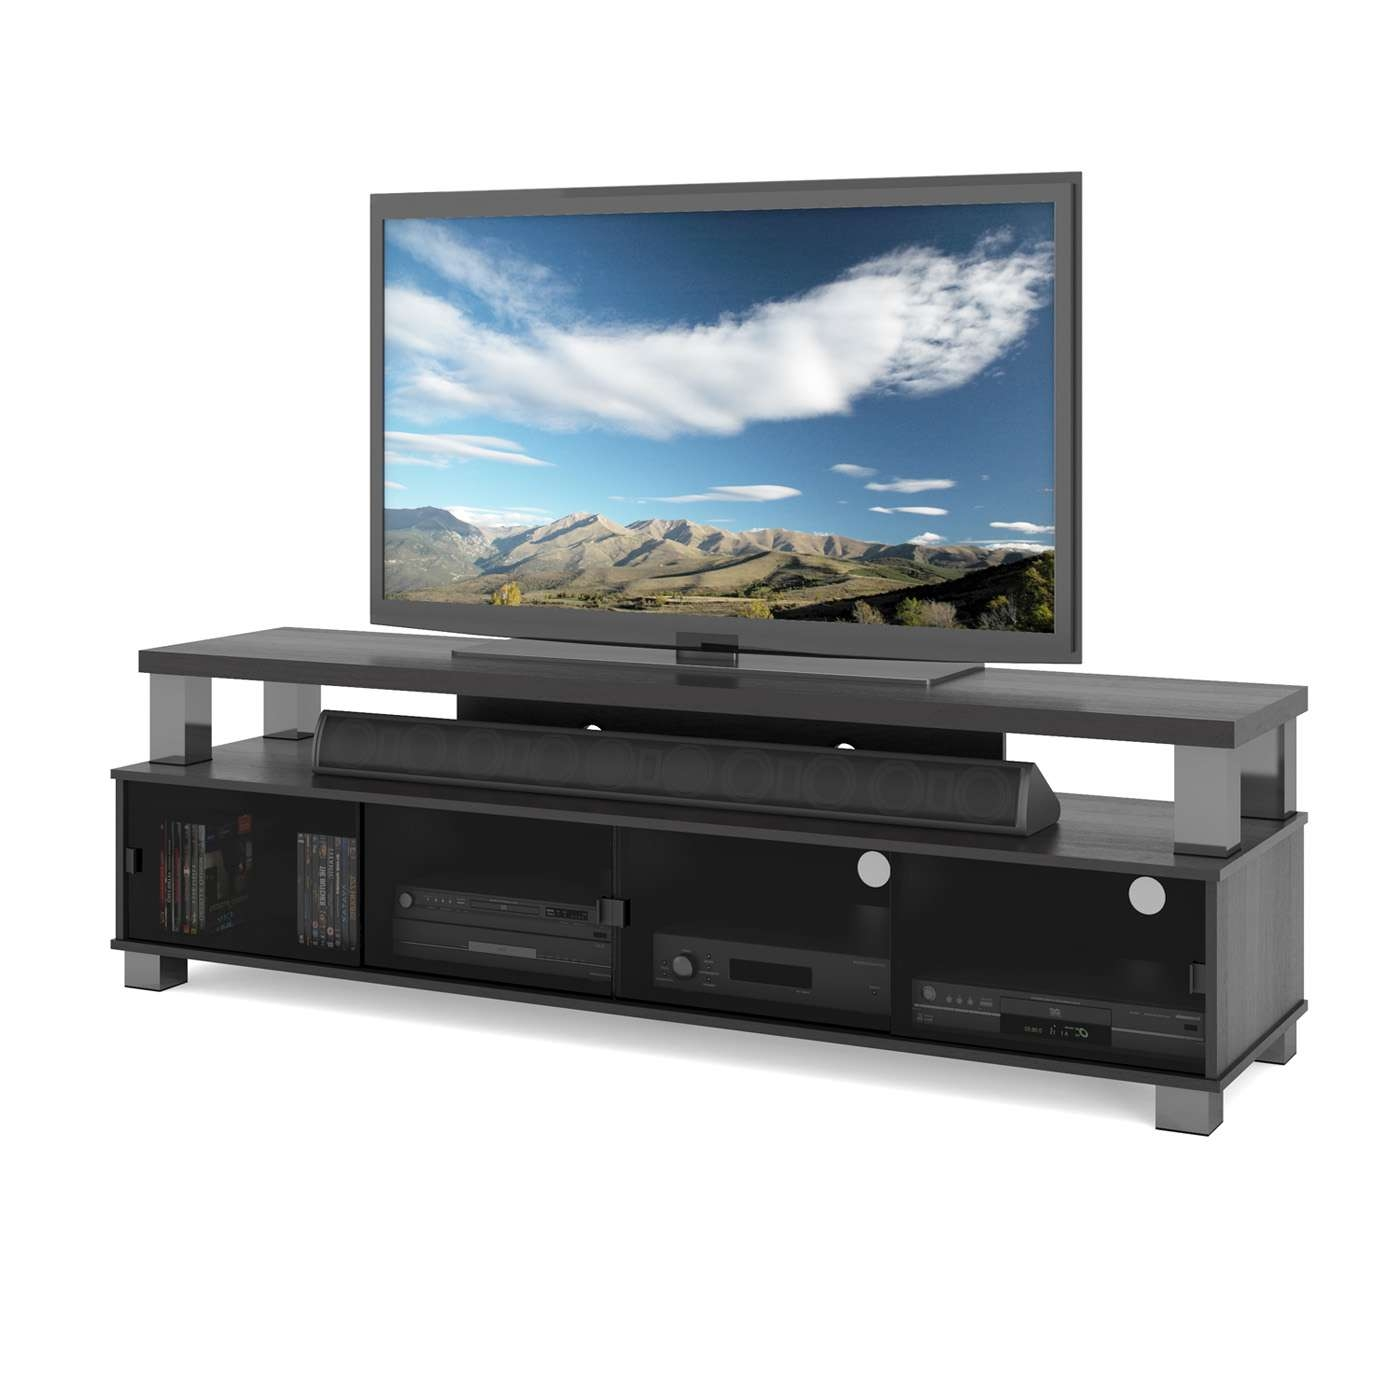 80 Inch Tv Stands | Lowe's Canada For 80 Inch Tv Stands (View 2 of 15)